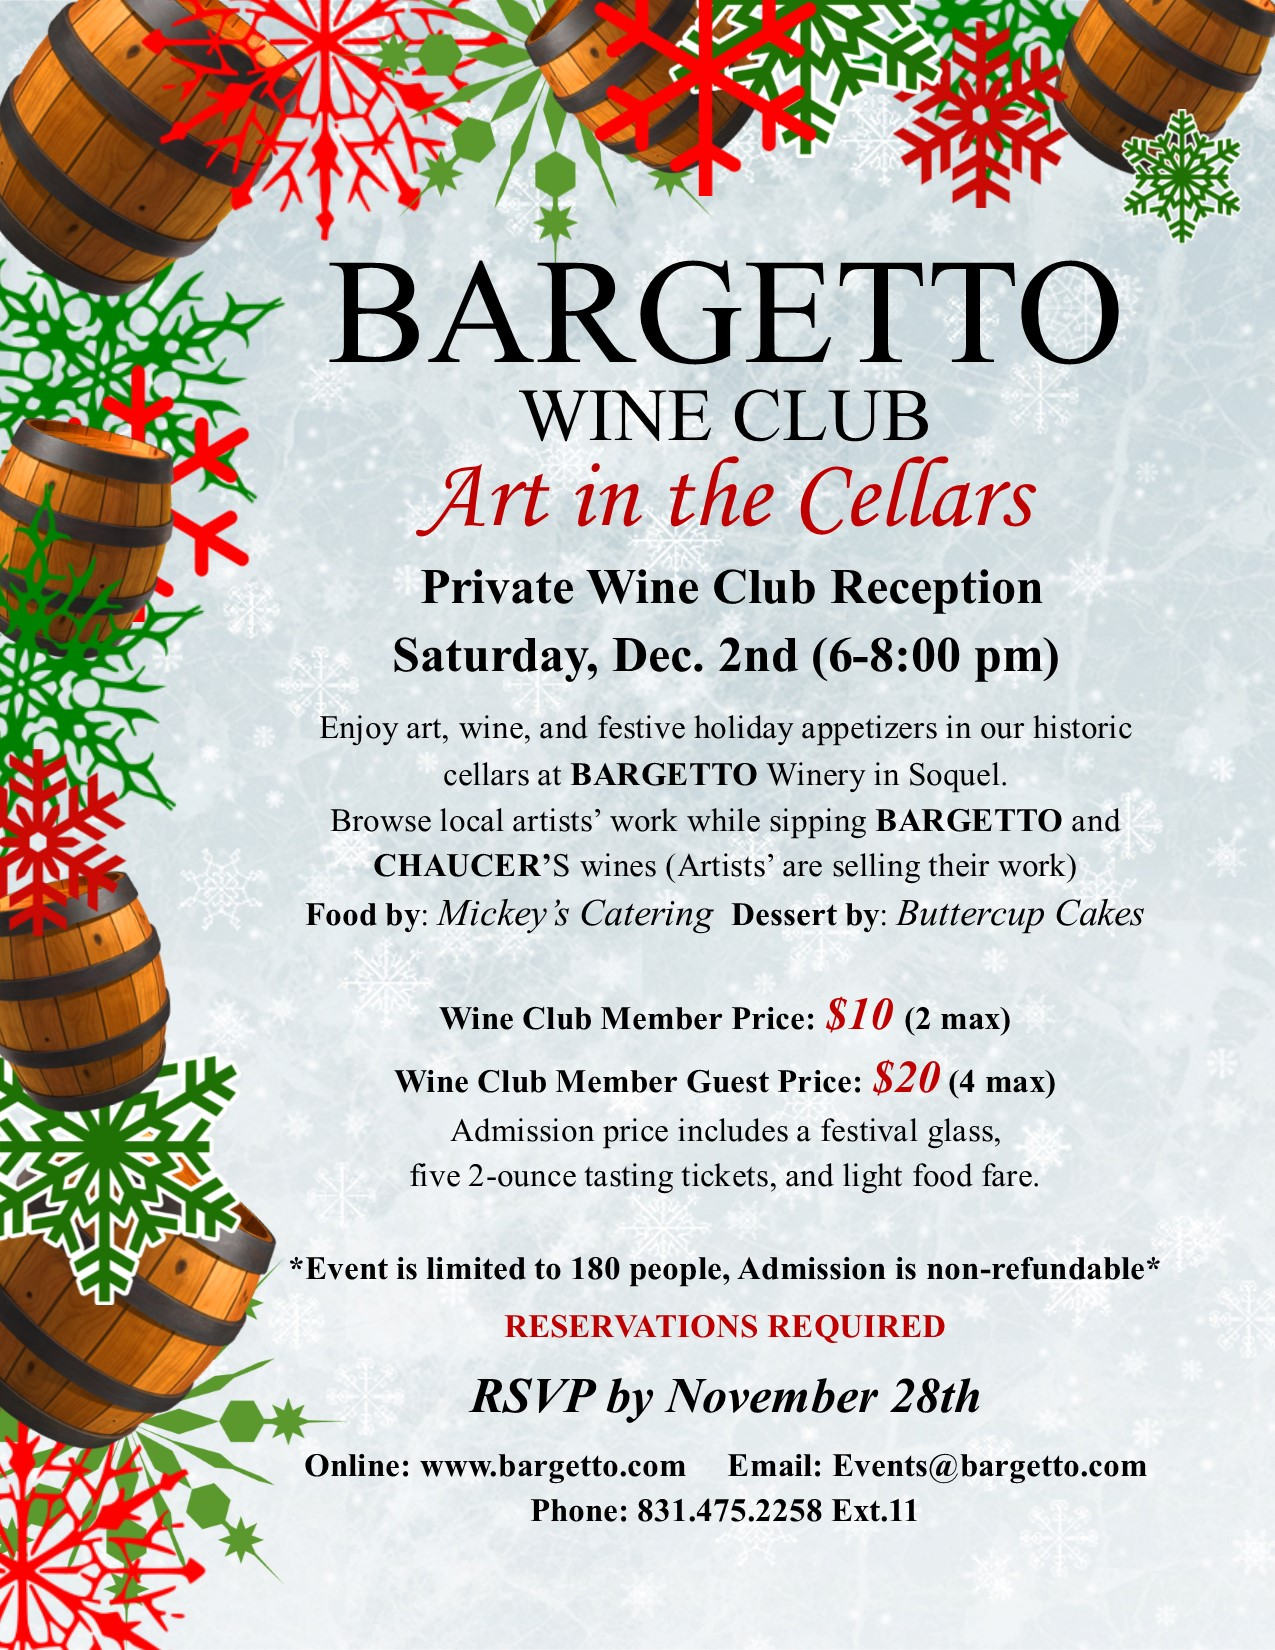 BARGETTO WINERY'S Annual Art in the Cellars *PRIVATE WINE CLUB RECEPTION* @ BARGETTO WINERY CELLARS